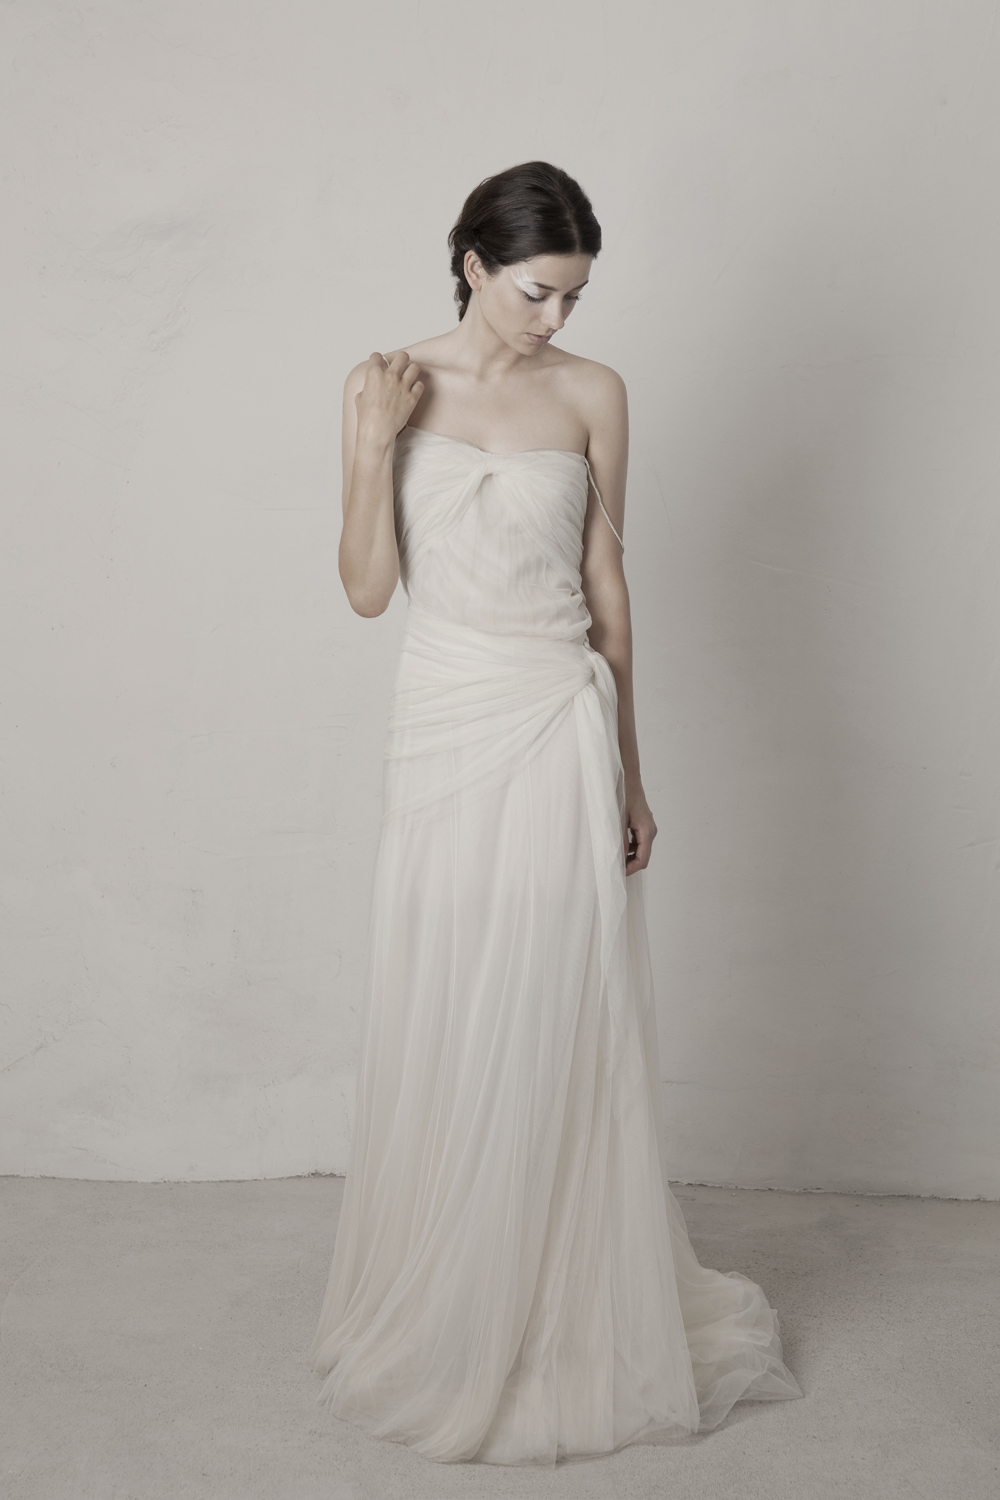 vestido novia cortana wedding planner barcelona paris berlin (13)